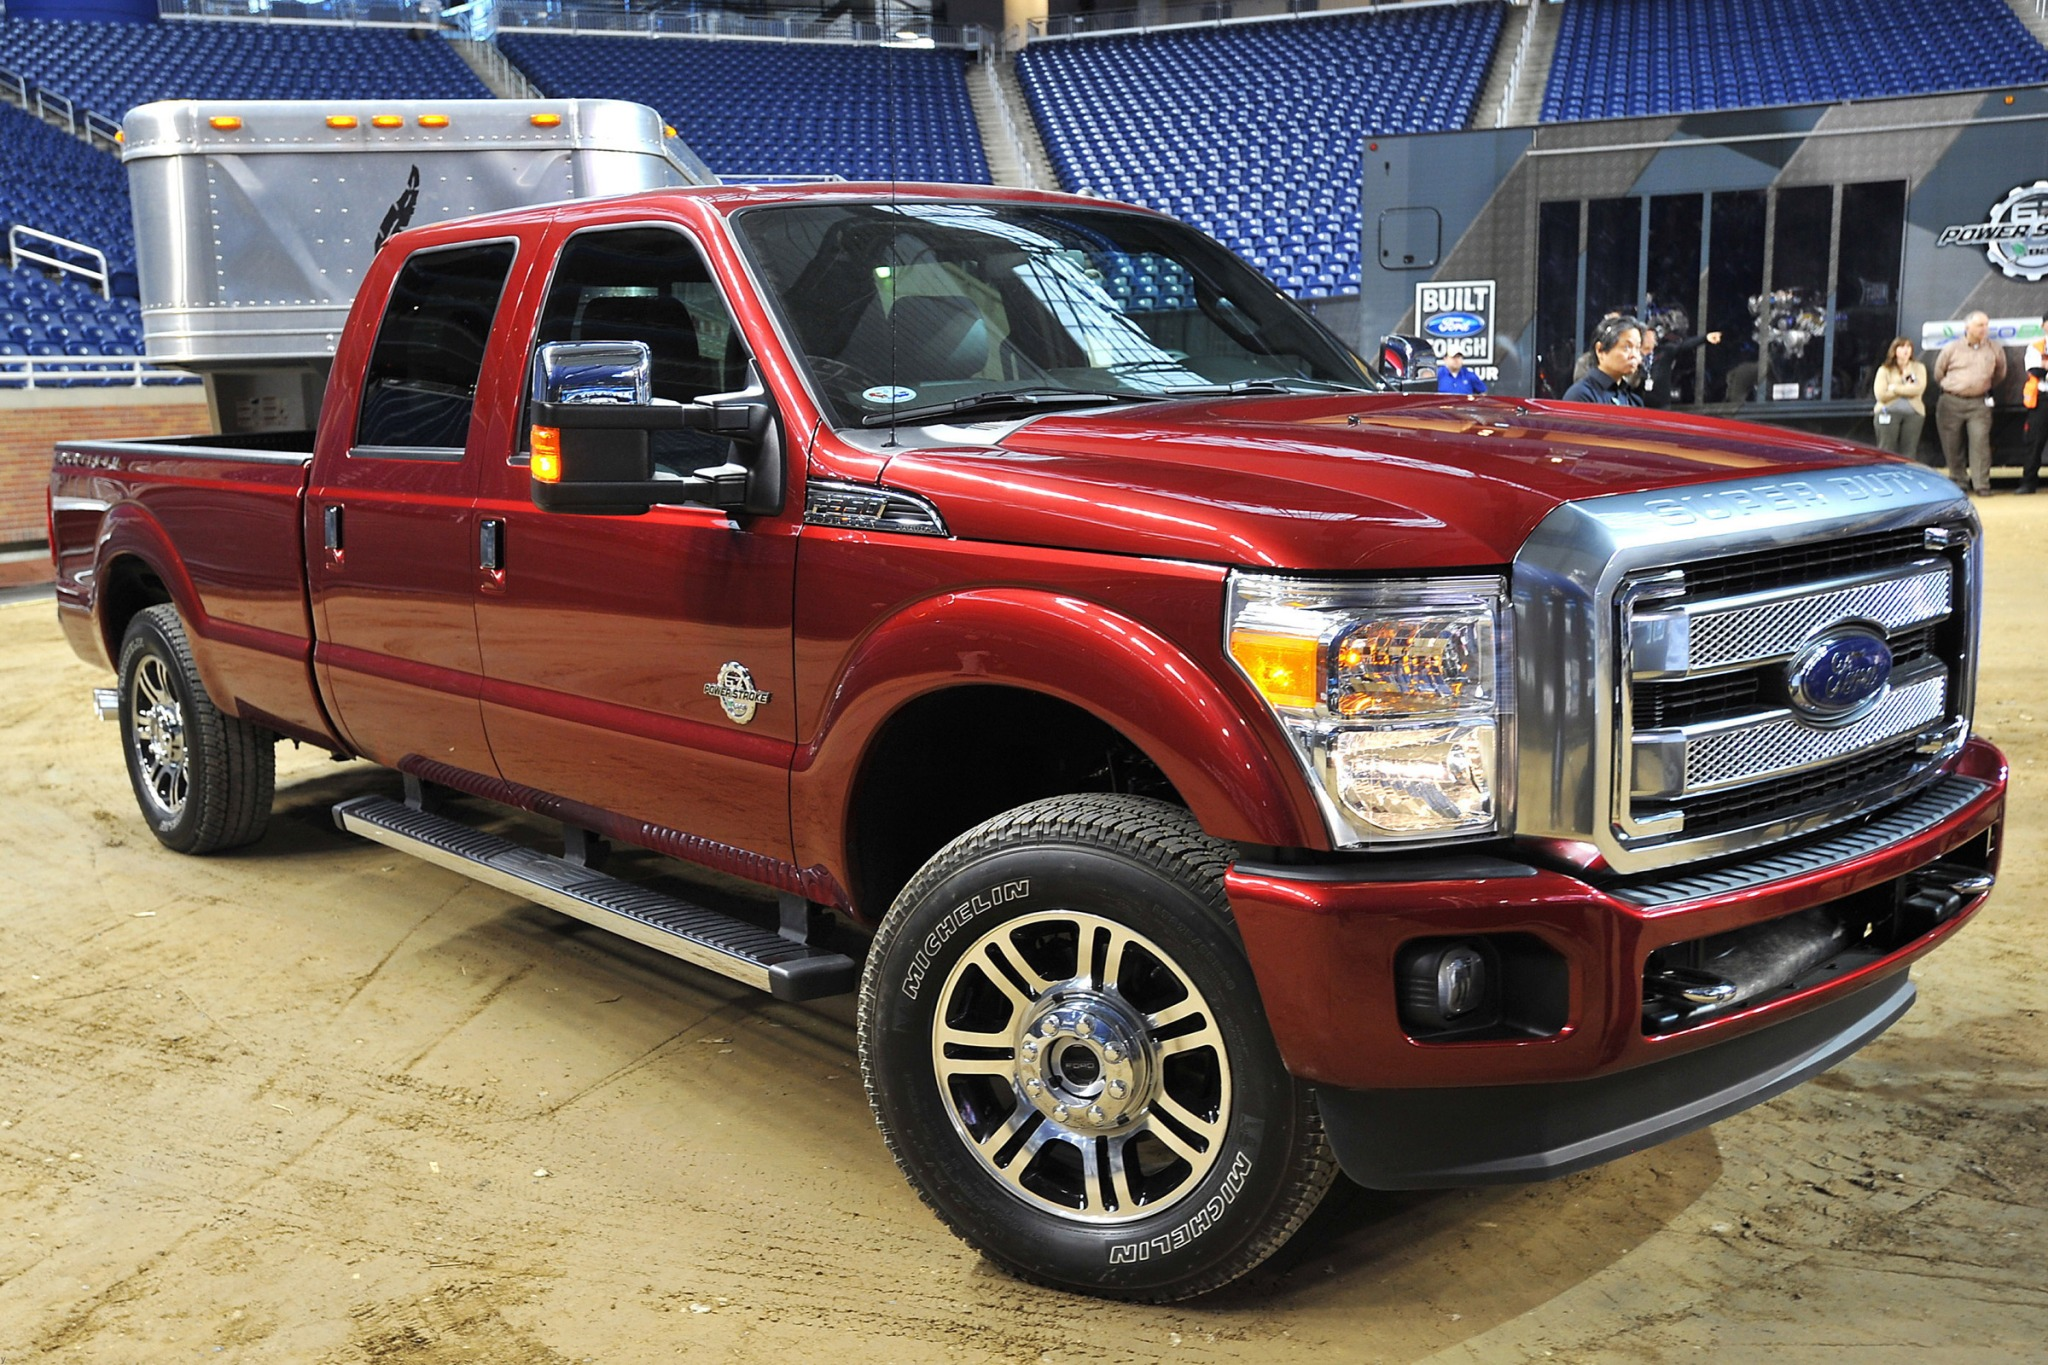 2014 Ford F-250 Super Dut interior #2